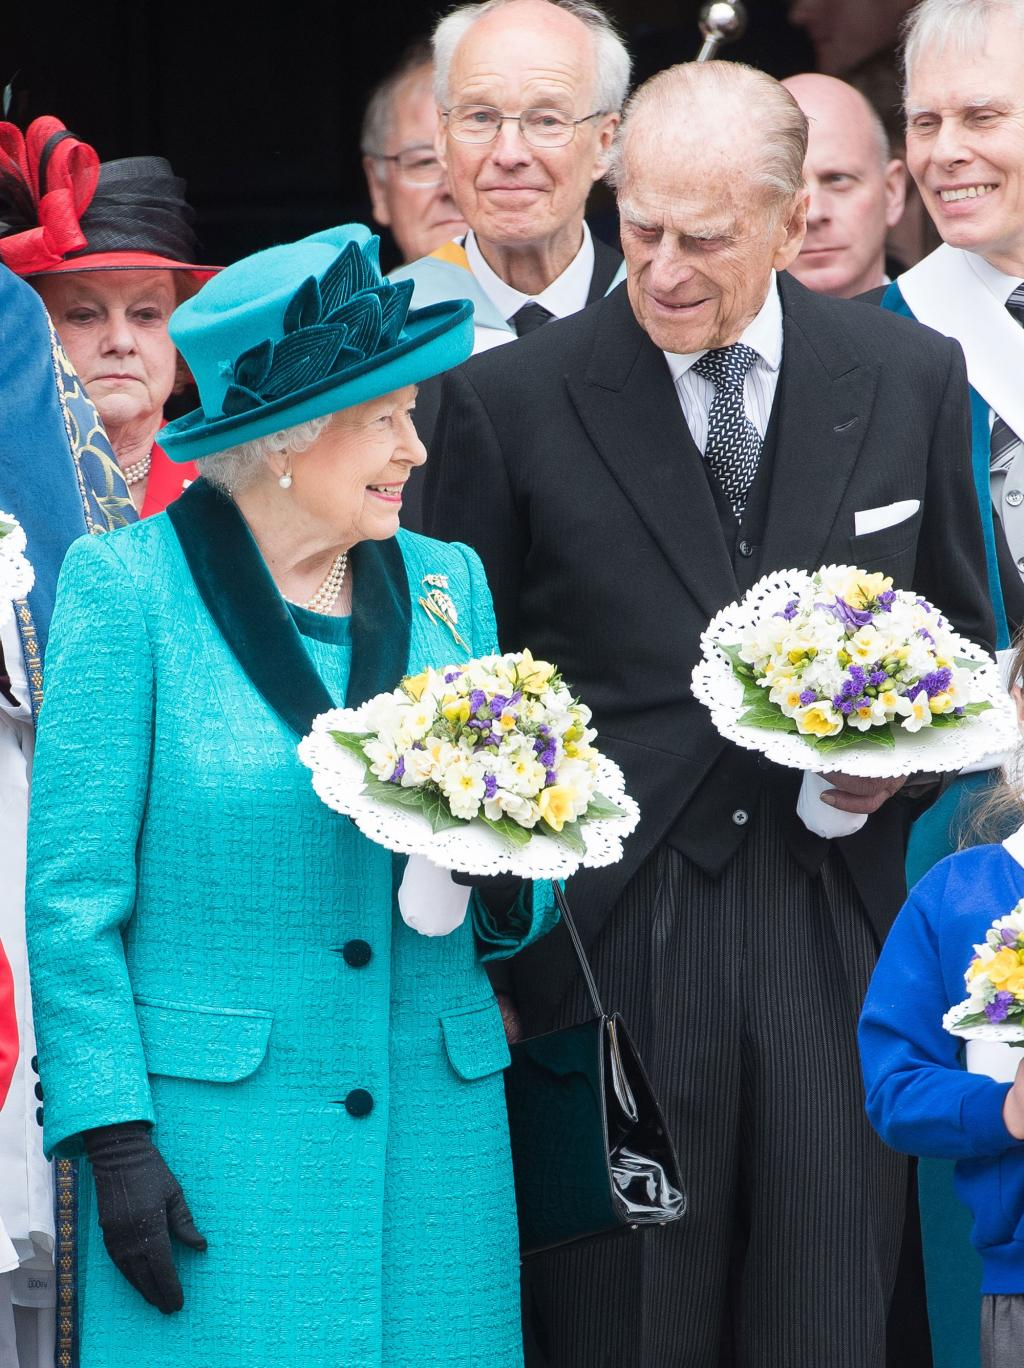 Prince Philip, 95, Retires from Royal Duties After 70 Years by Queen Elizabeth's Side